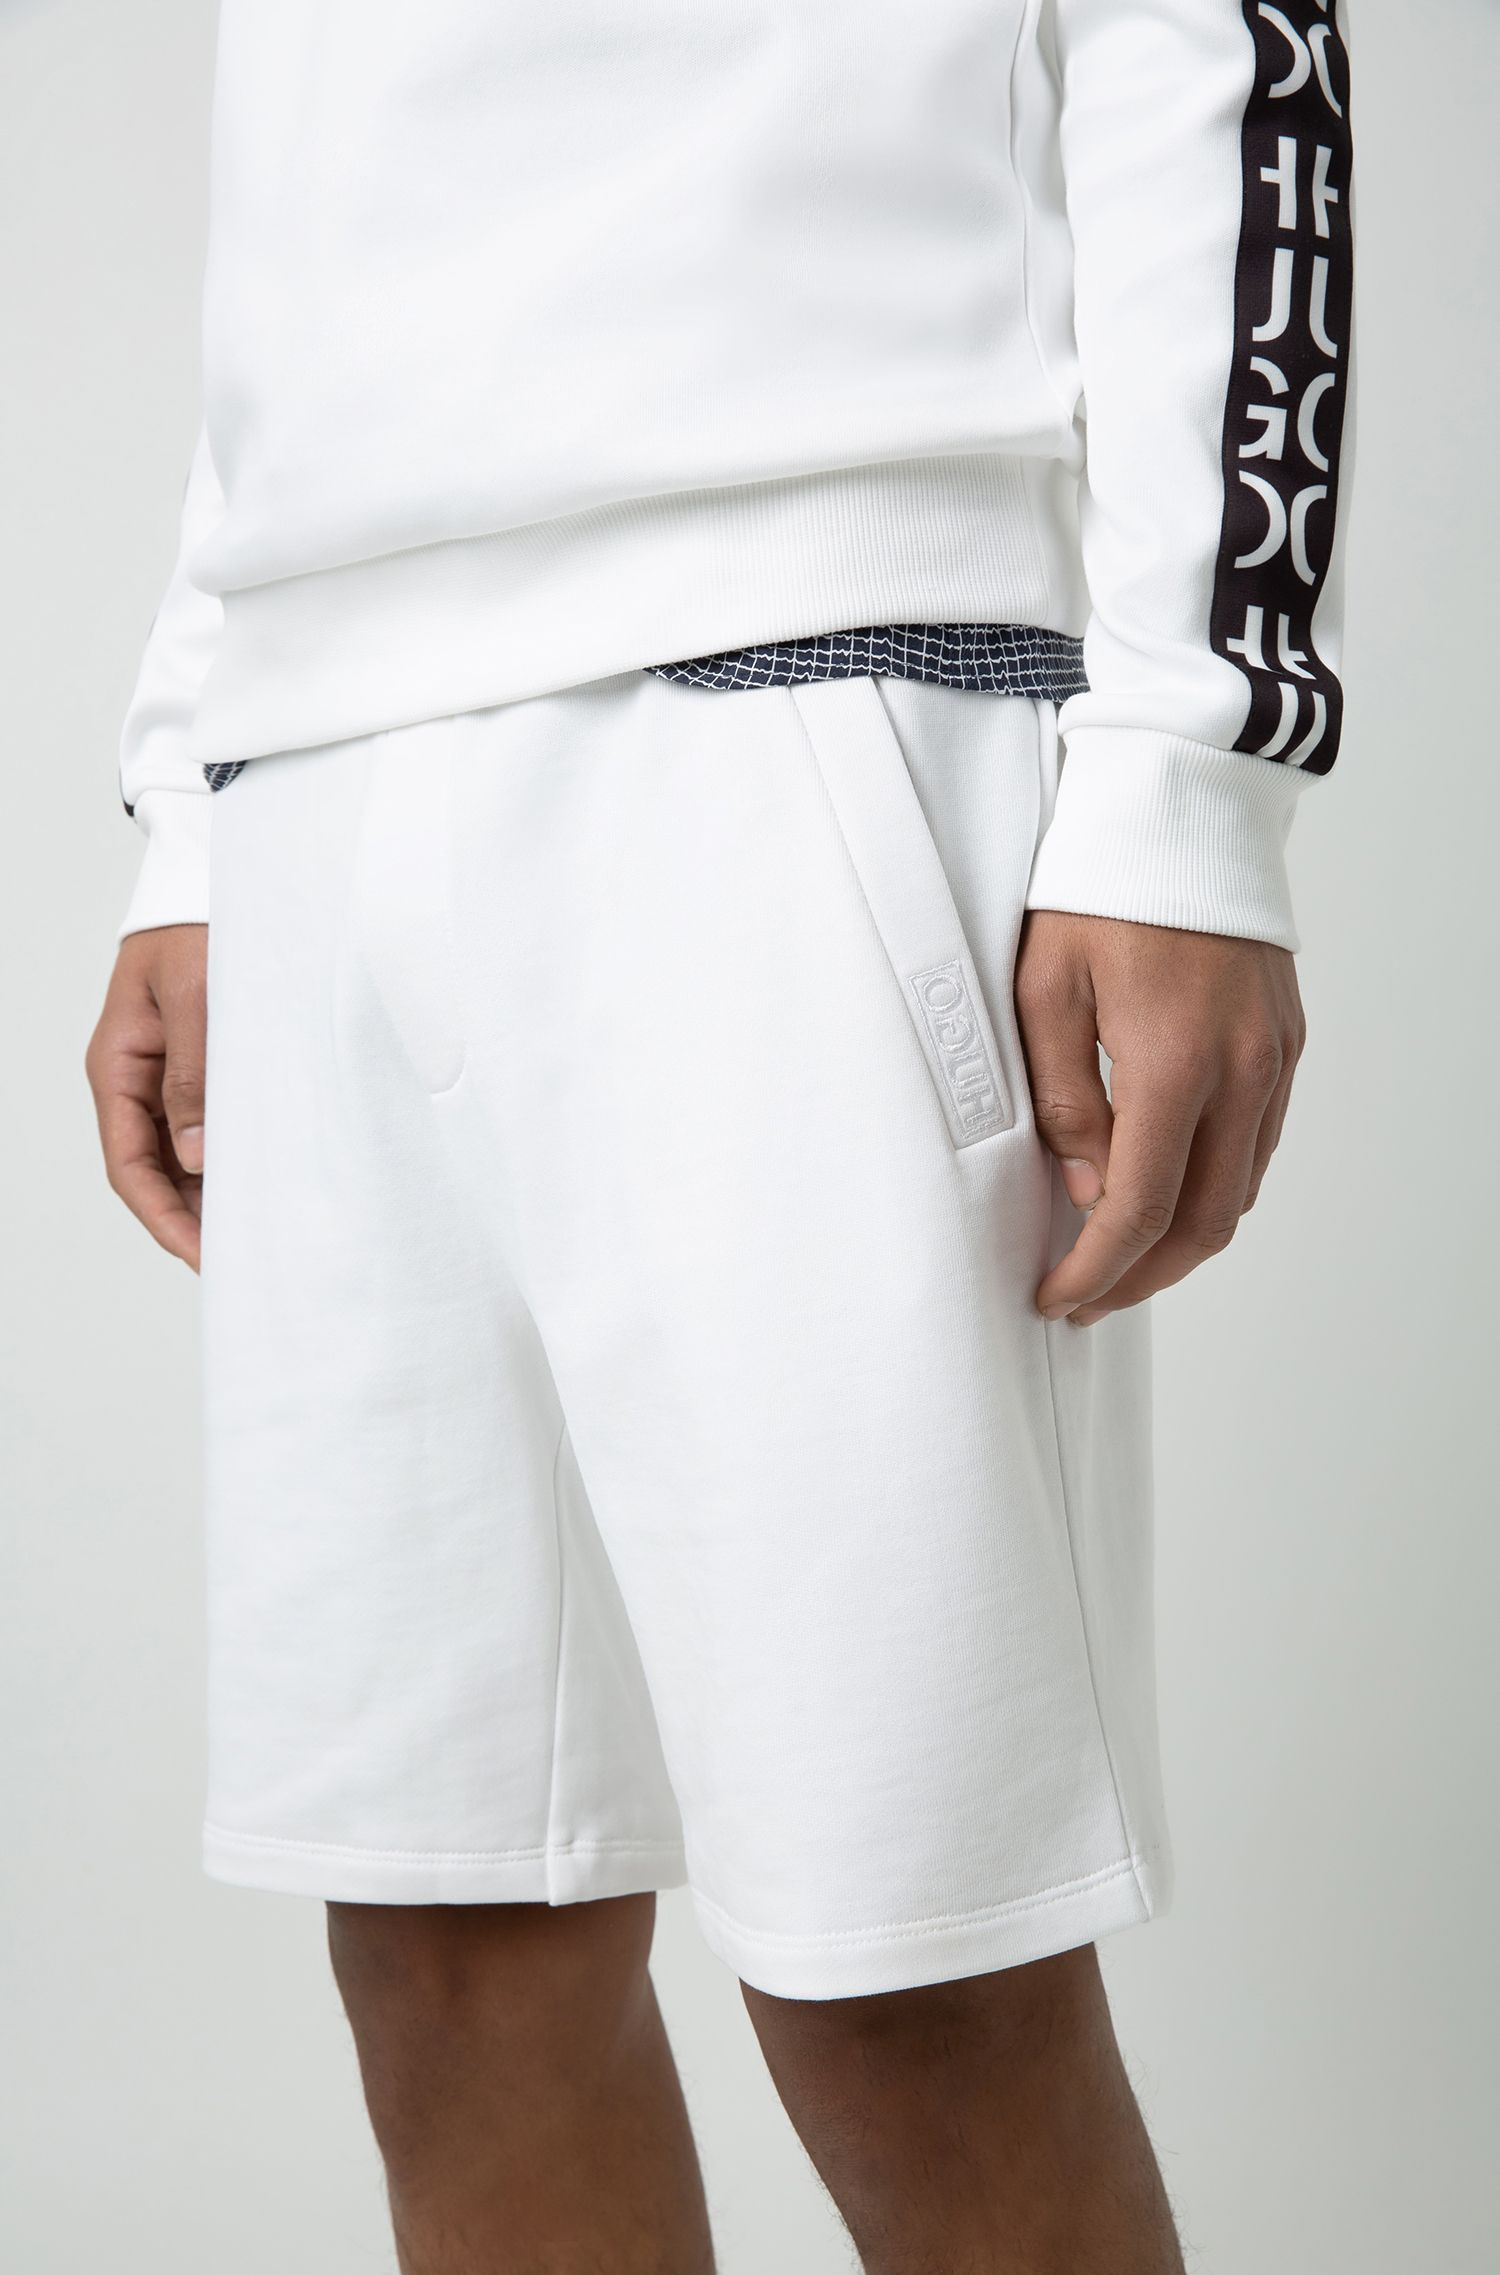 Pantaloncini in french terry con cordoncino, Bianco